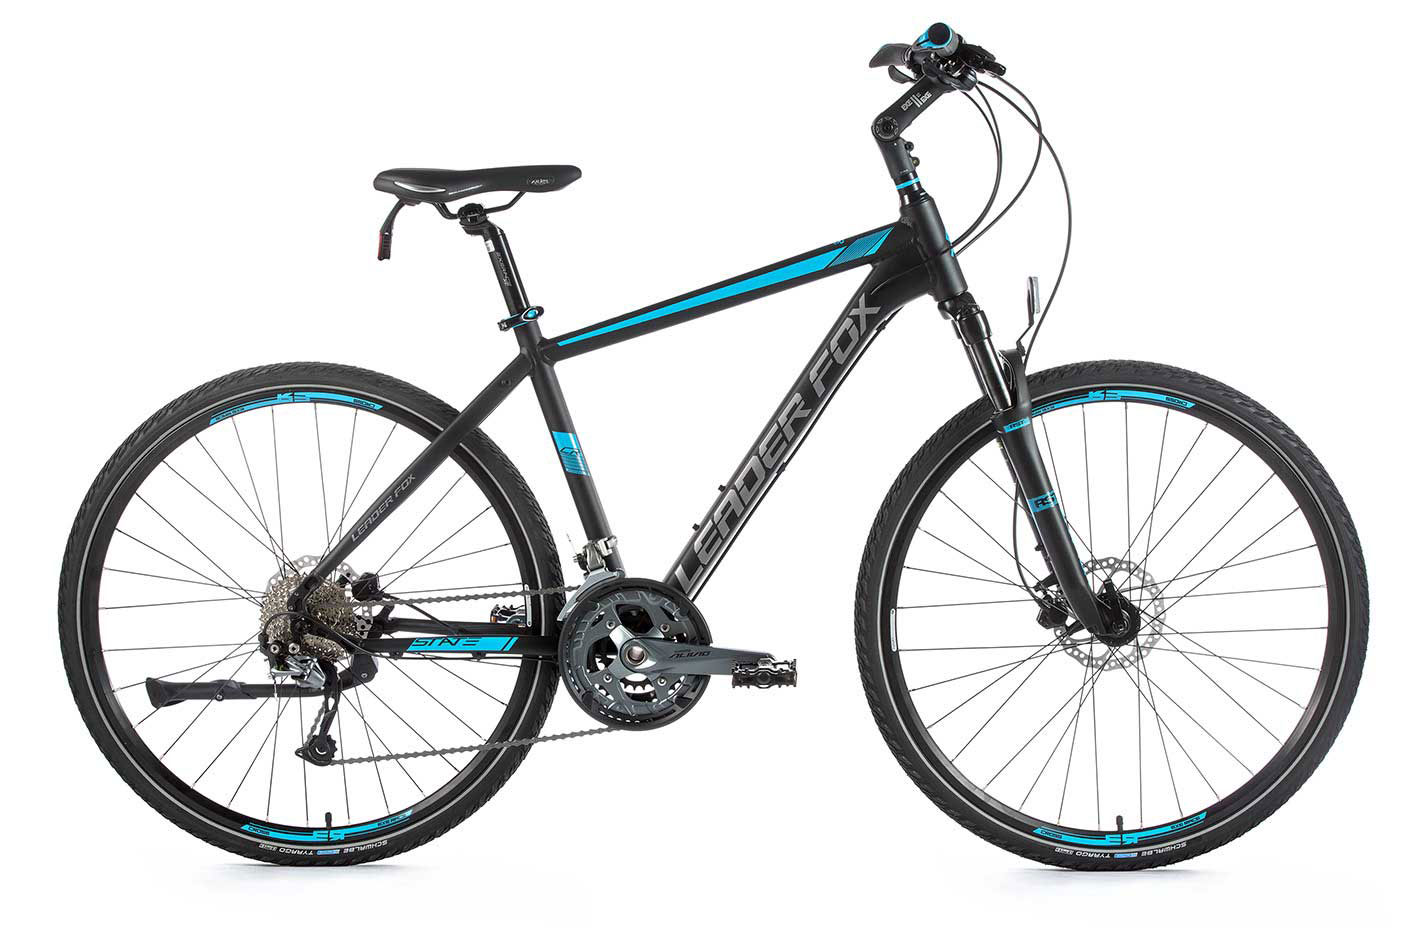 Bicicleta de cross Leader Fox State Gent